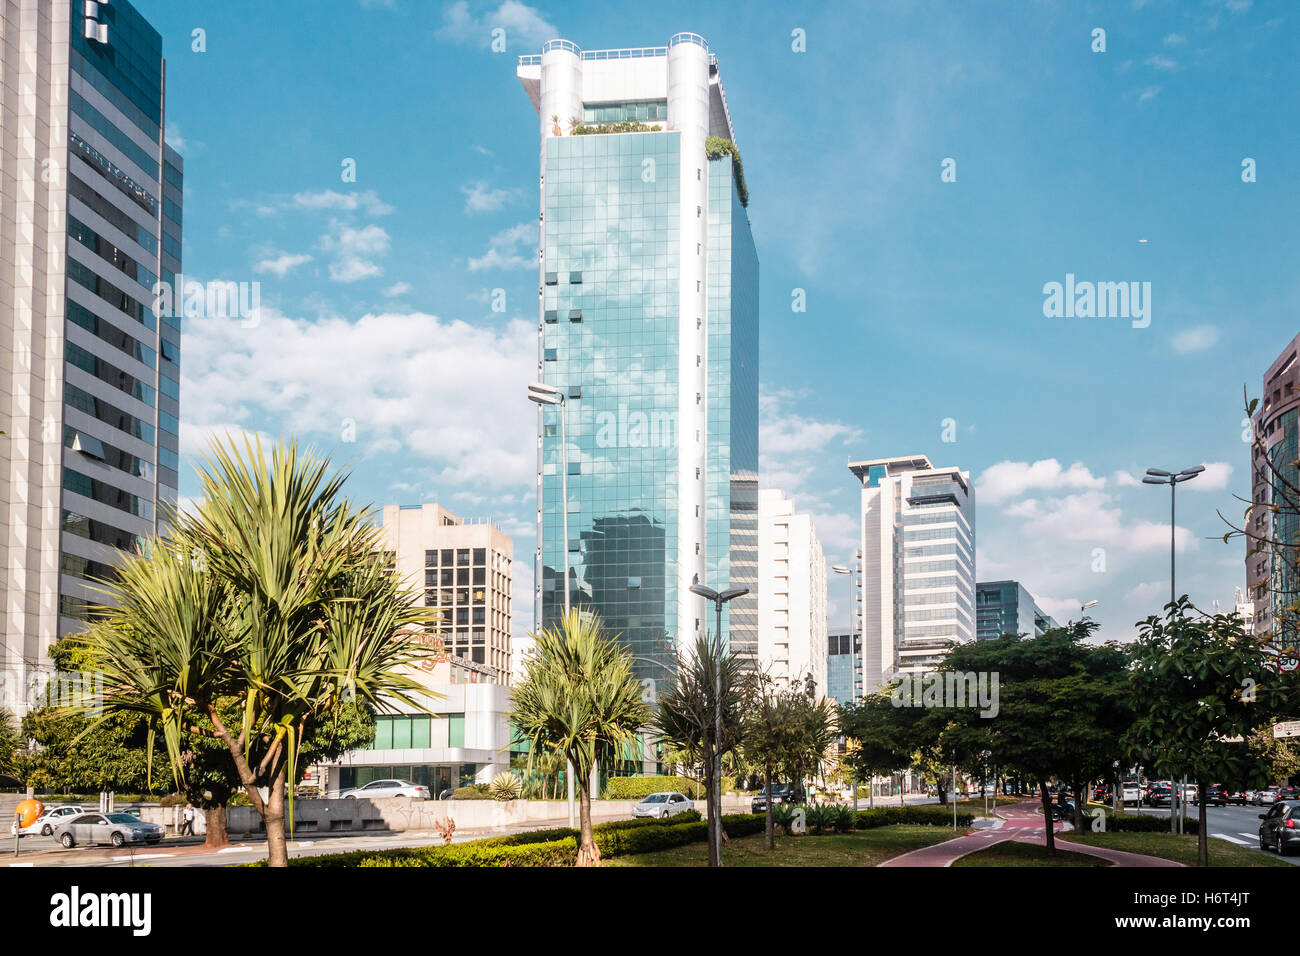 Photo of Buildings and Streets of Sao Paulo, Brazil (Brasil) - Stock Image